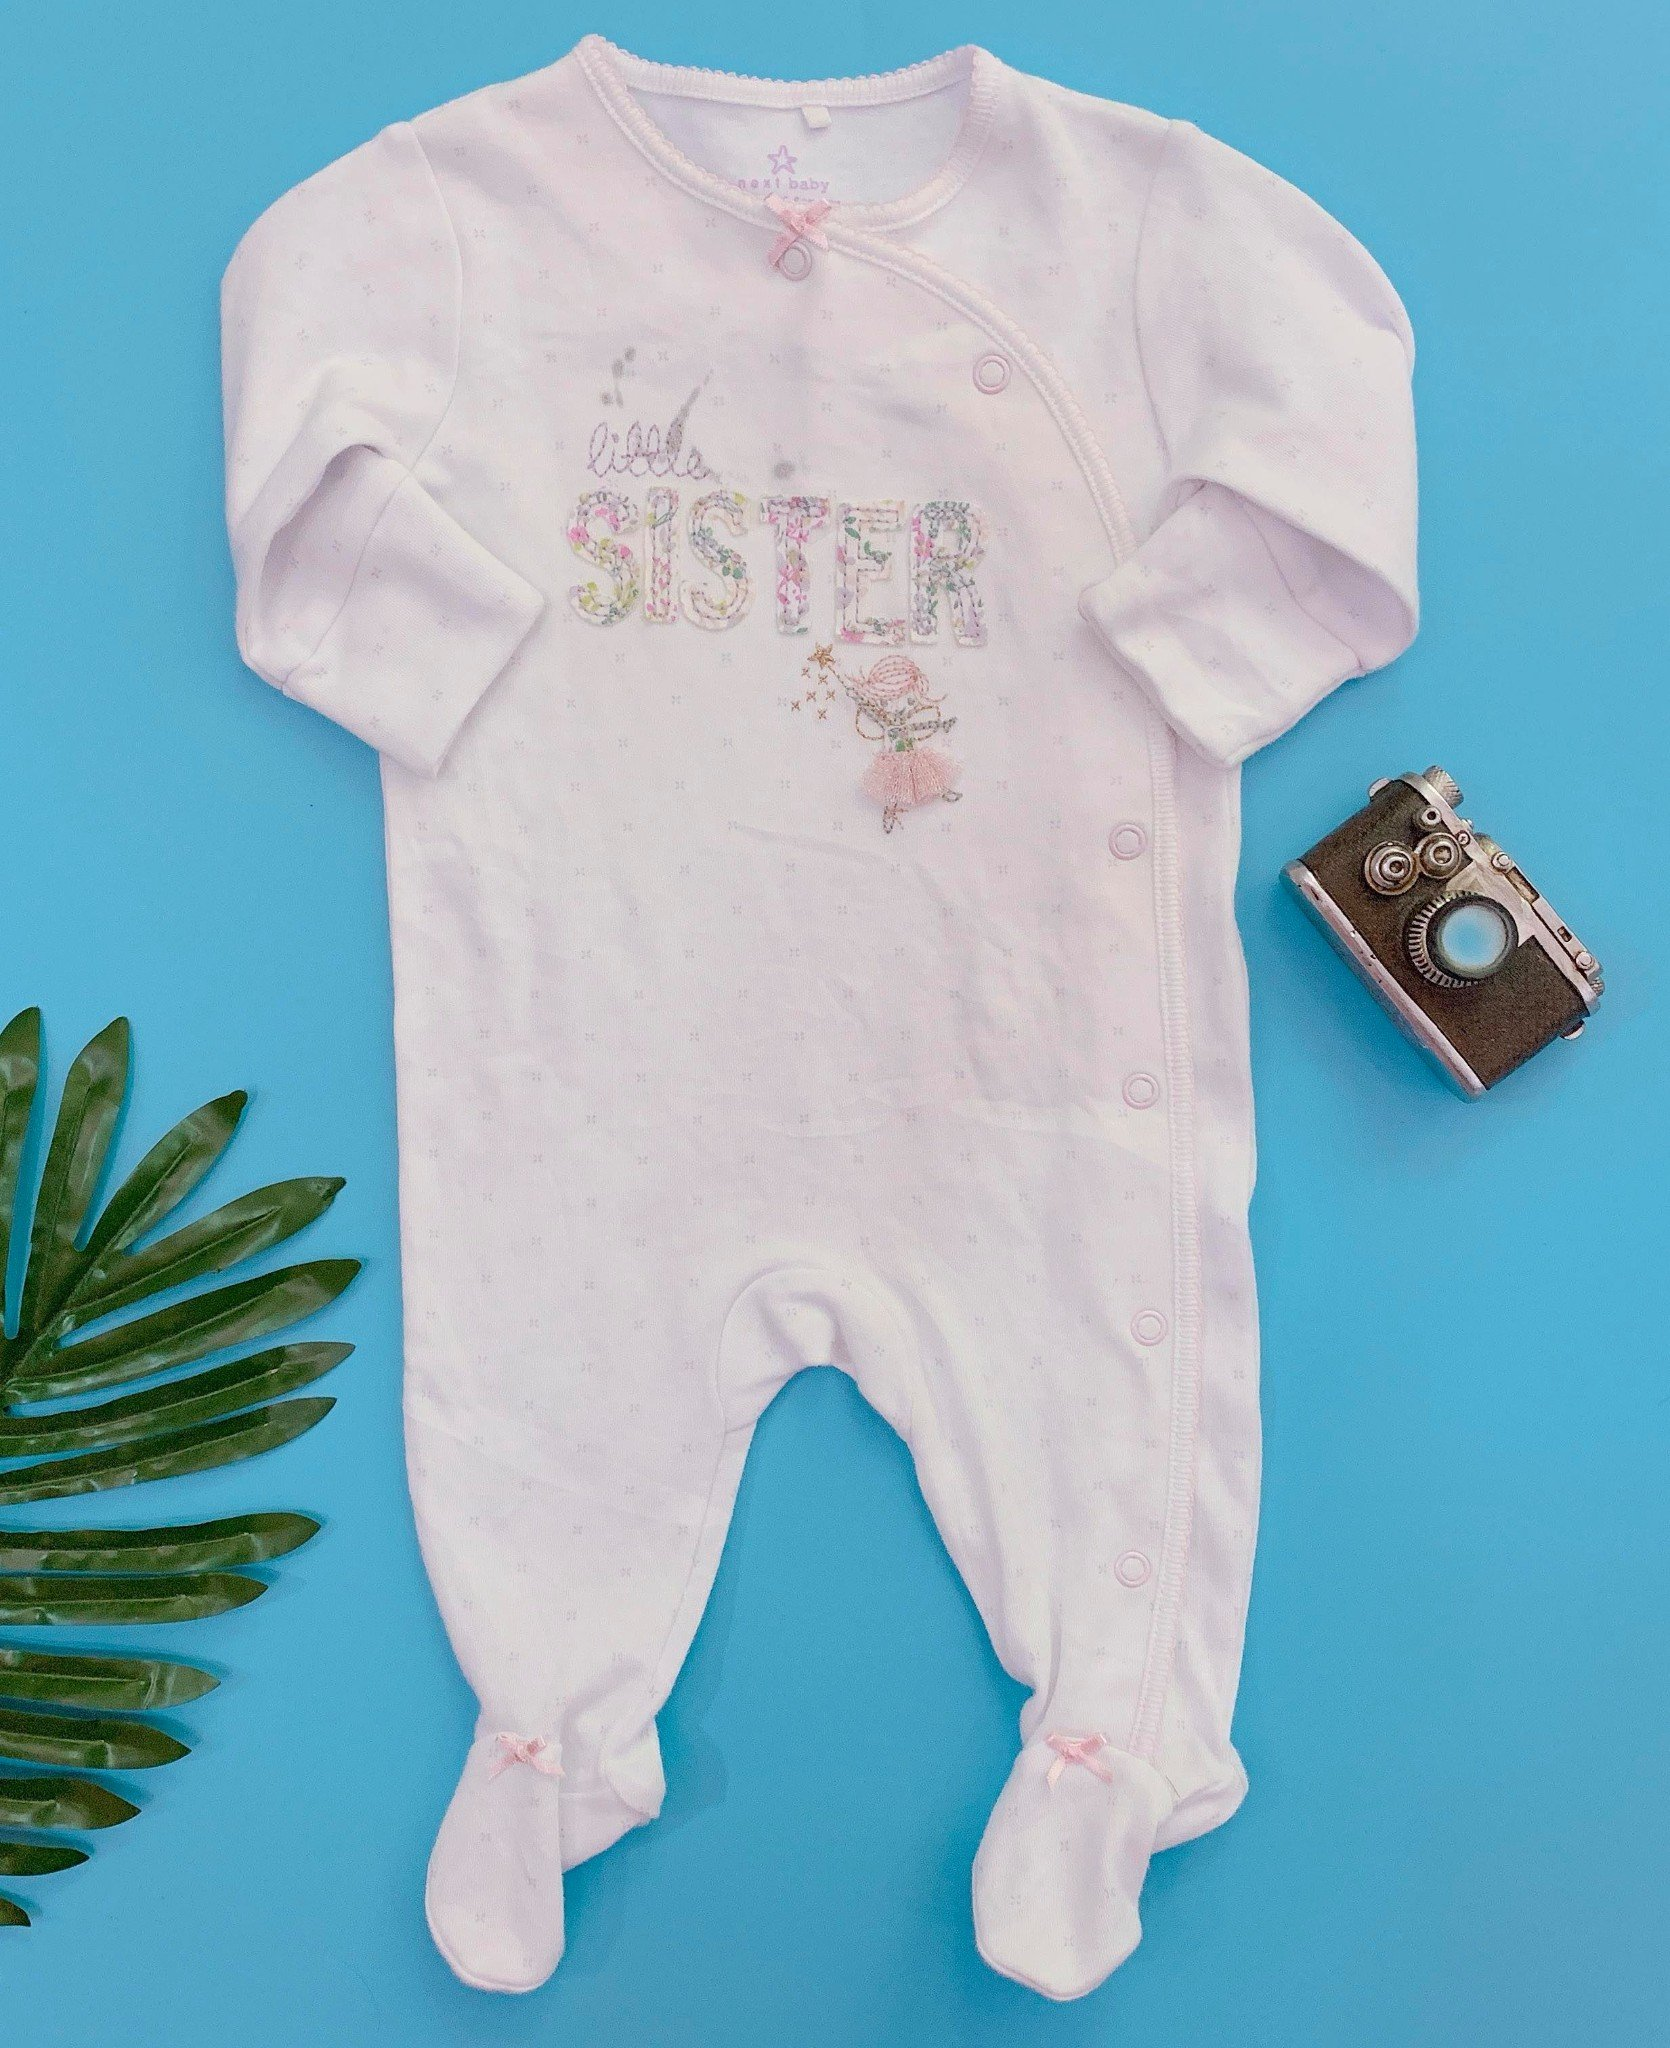 [3-7kg] Sleepsuit Next Baby 73 [Girl] - Hồng Trắng/Little Sister